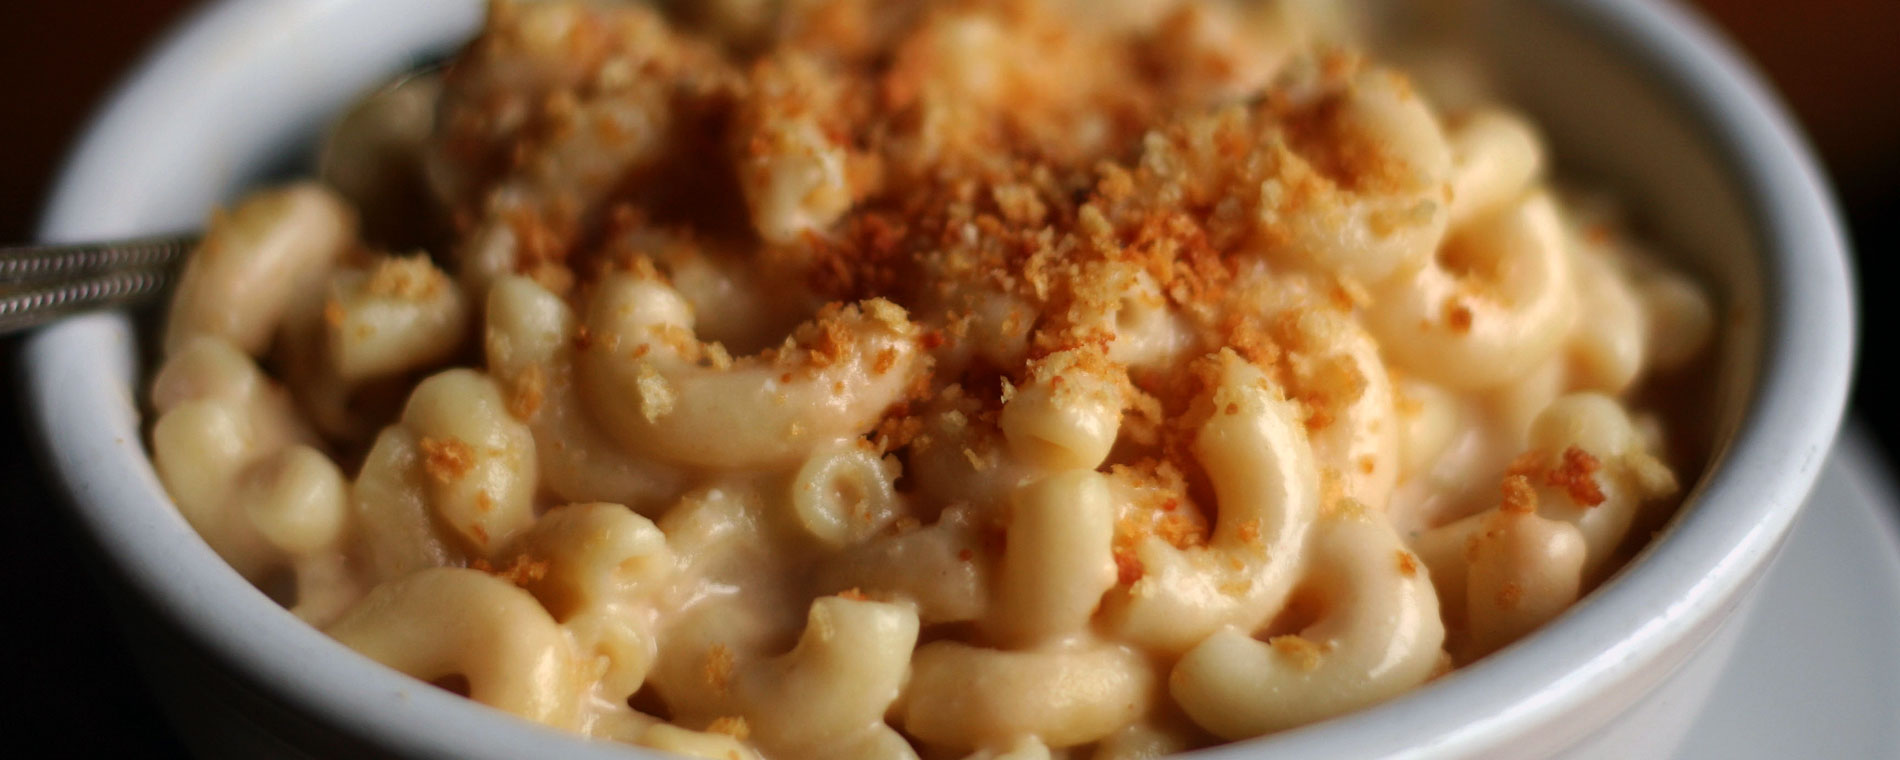 This Week In Food Porn Mac And Cheese And Muesli Munchies